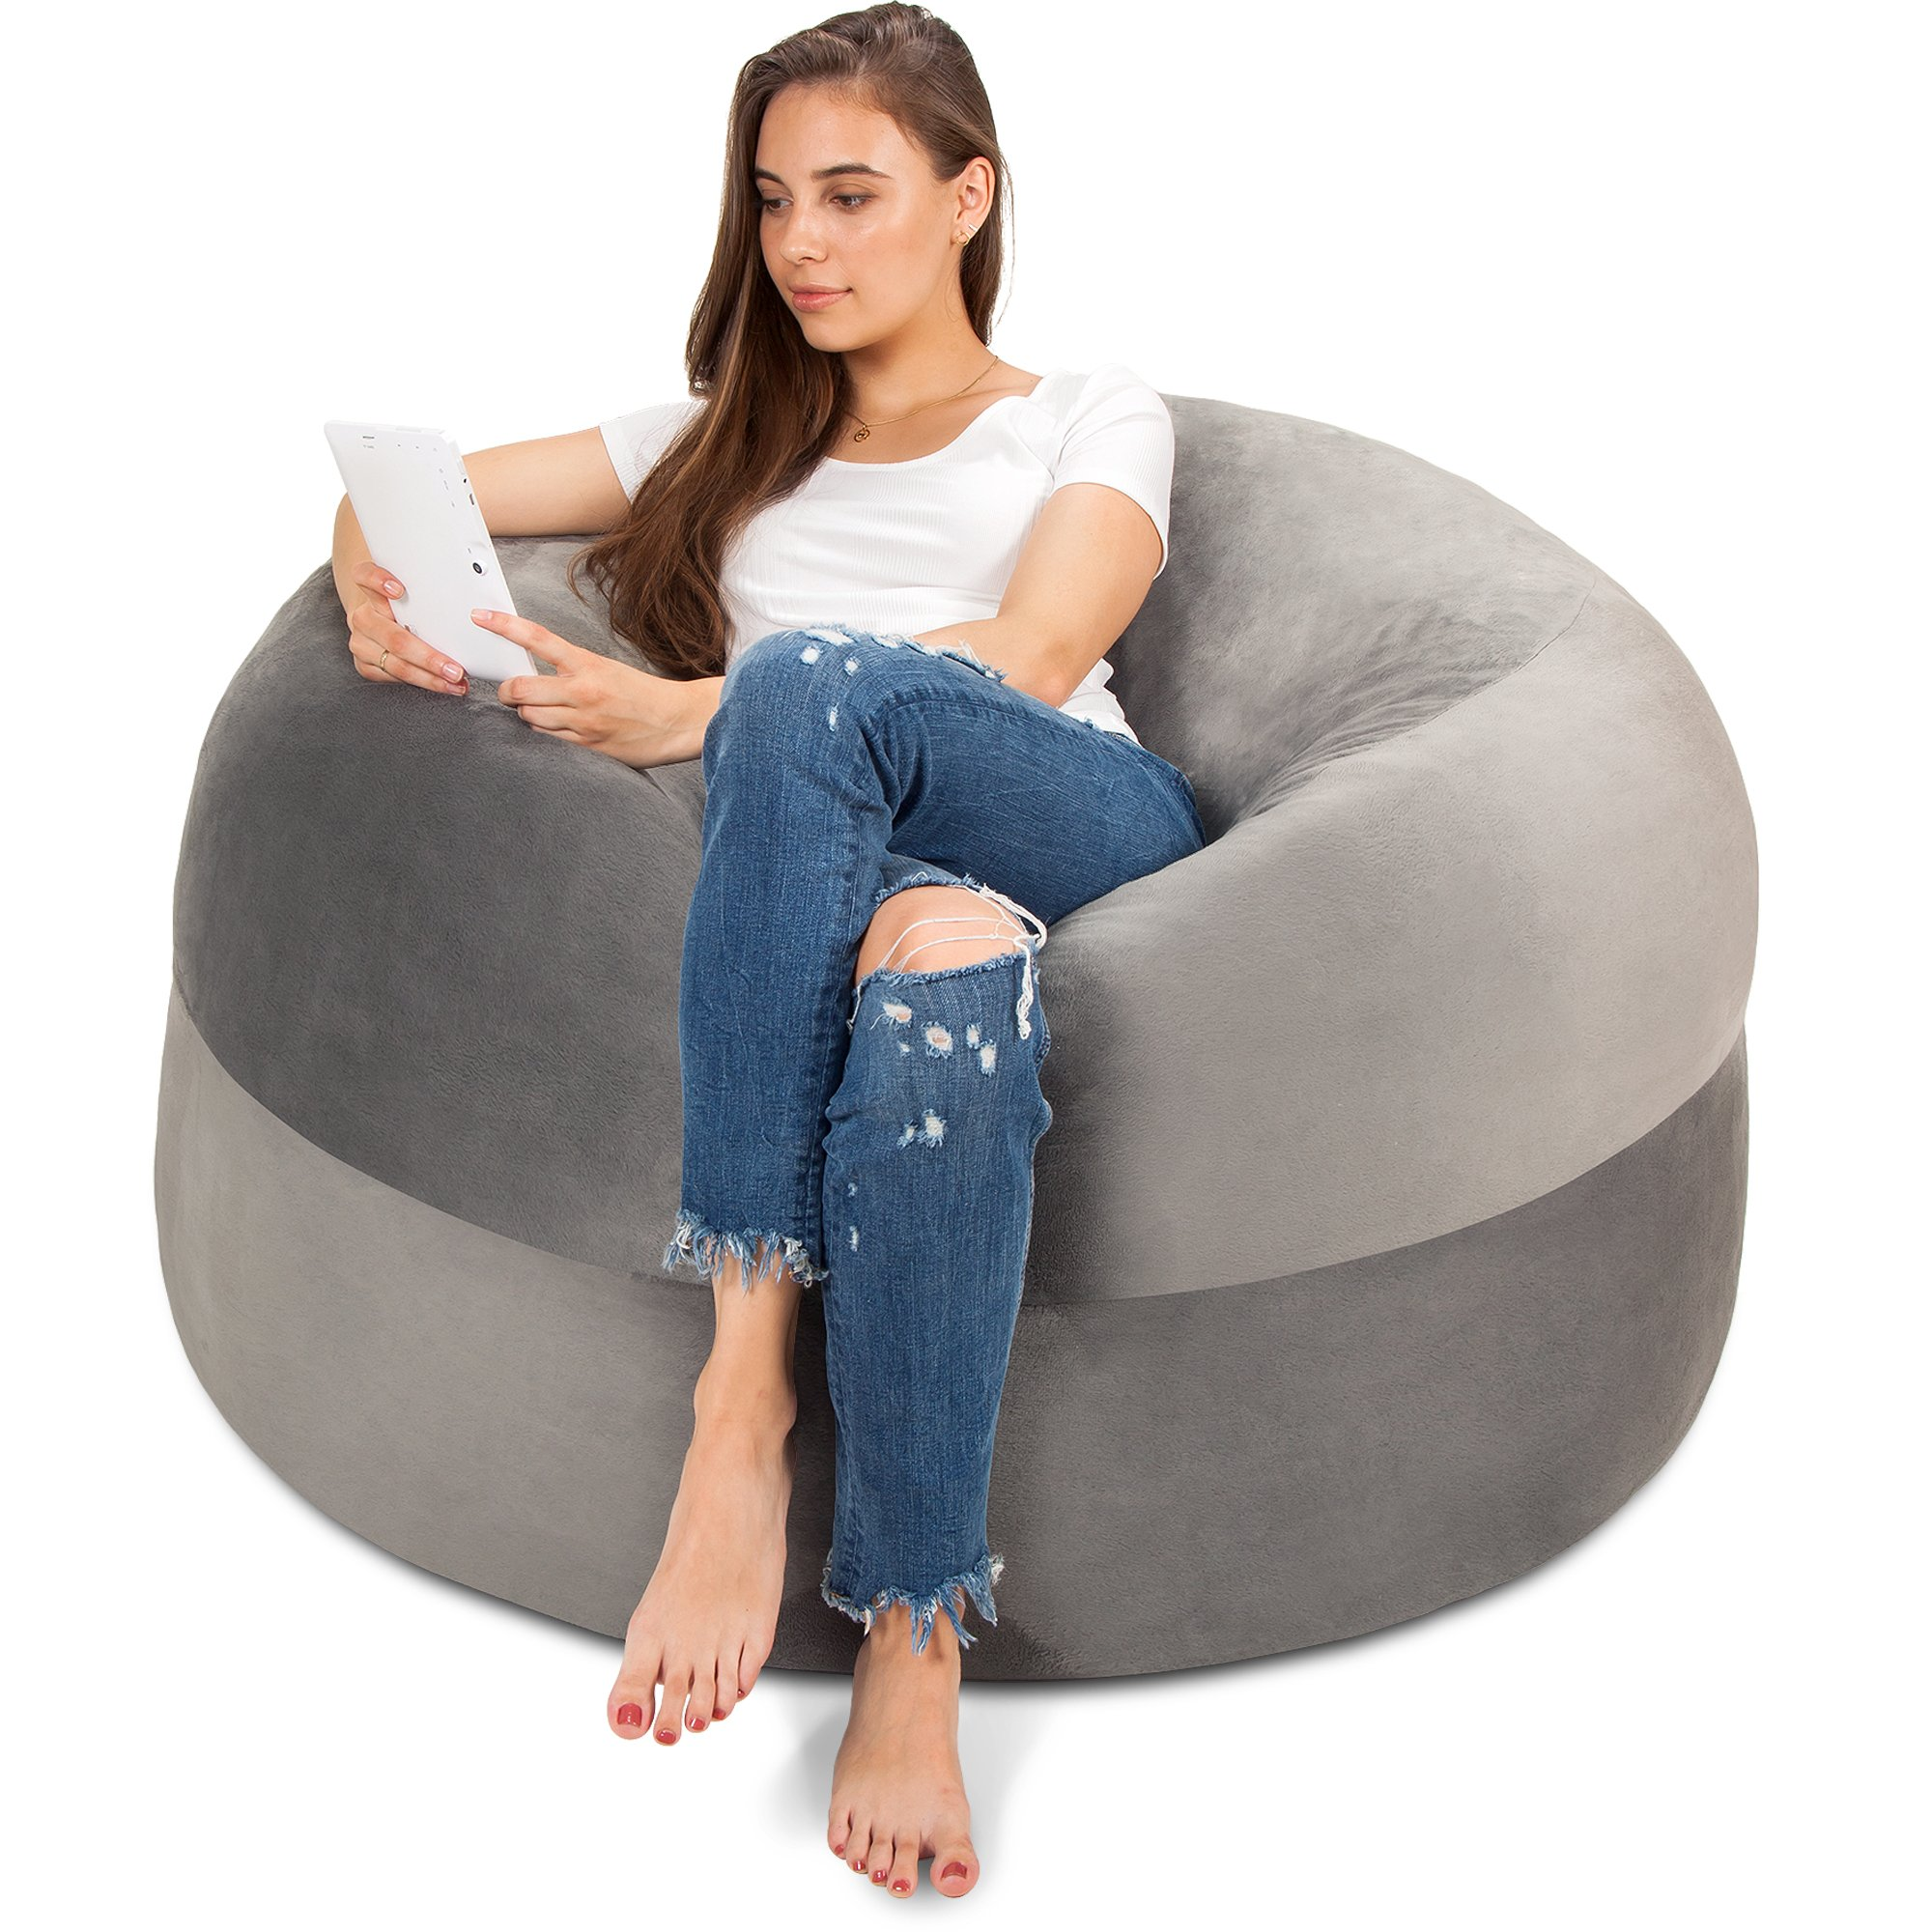 5FT Bean Bag Chair in Steel Grey - Big Velour Comfort Cover with Memory Foam Filler - Gigantic Bed, Large Sofa, Cozy Lounger, Chill Mattress - Kids, Adults & Teens Love This Huge Sack Panda Sleep by Panda Sleep